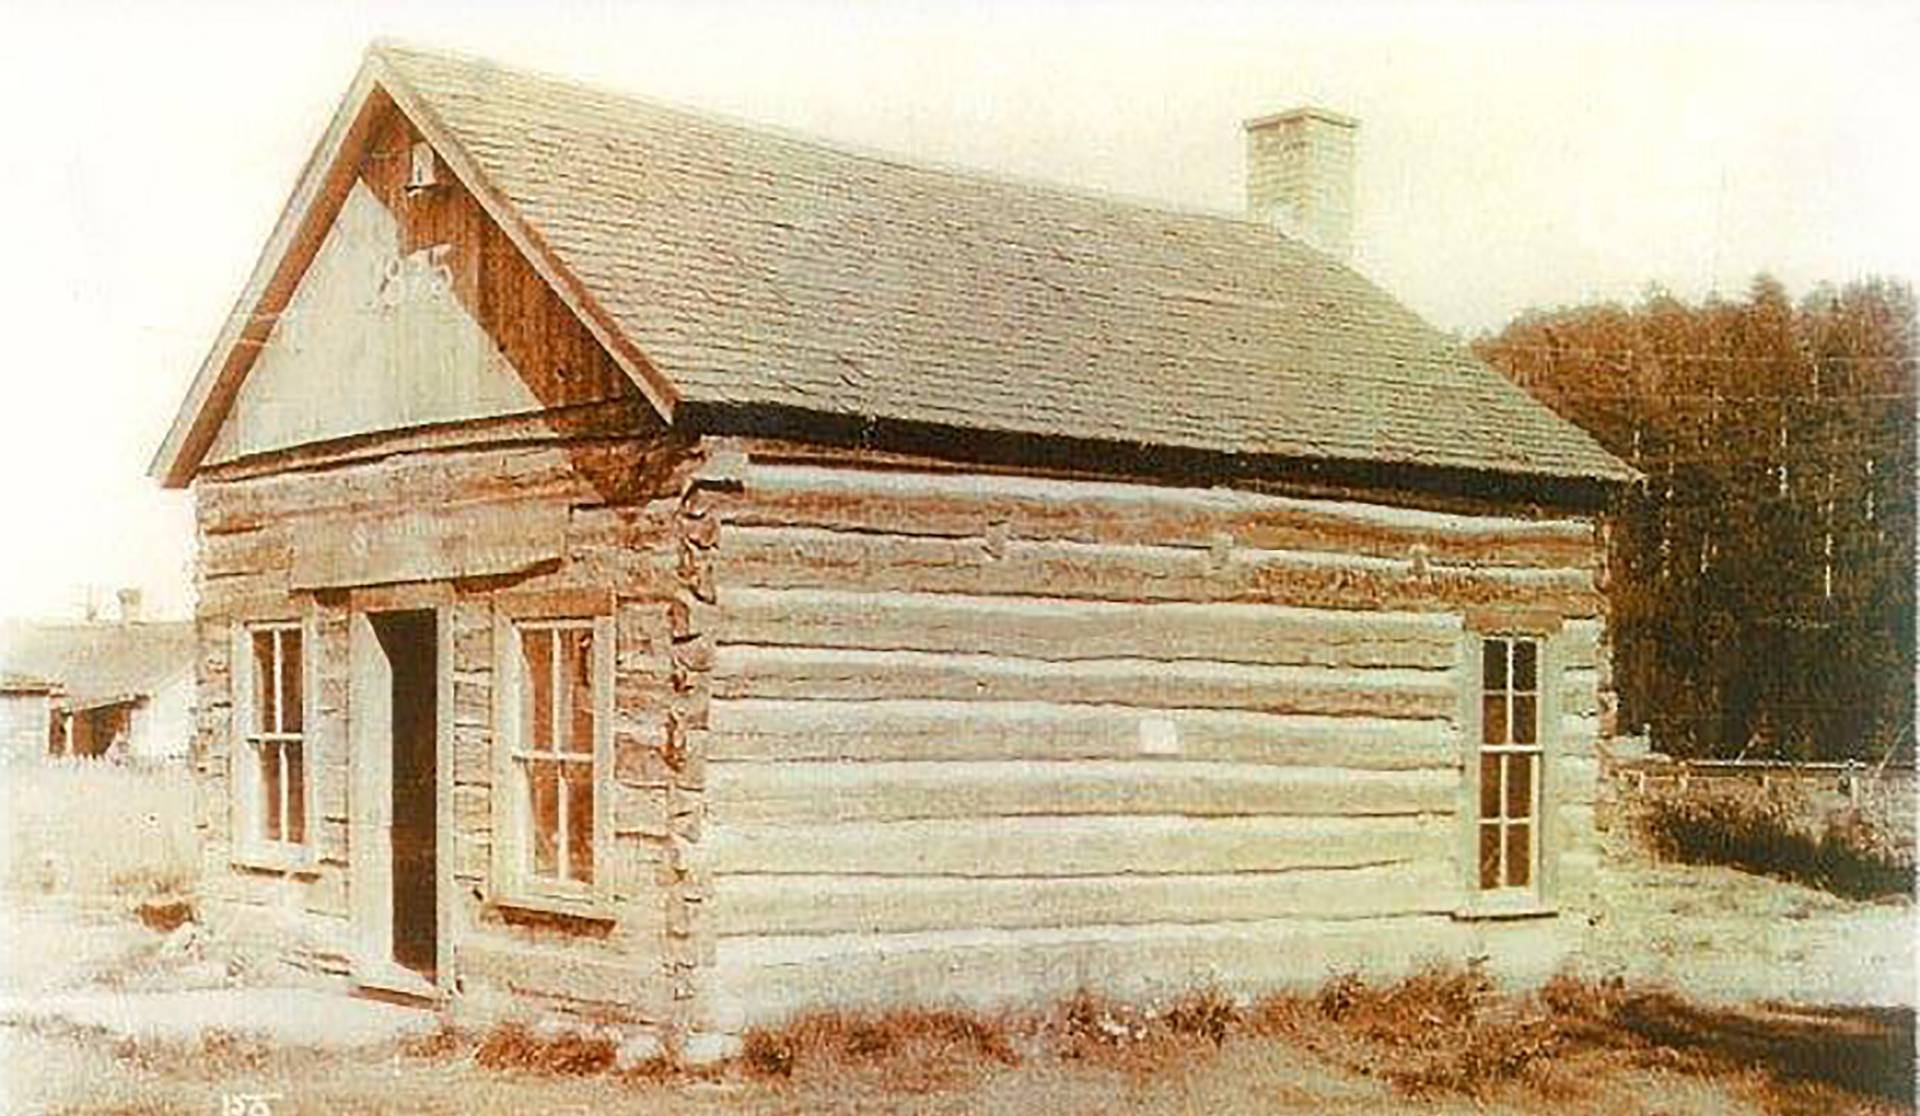 Log cabin in Way Park from 1881 in Custer